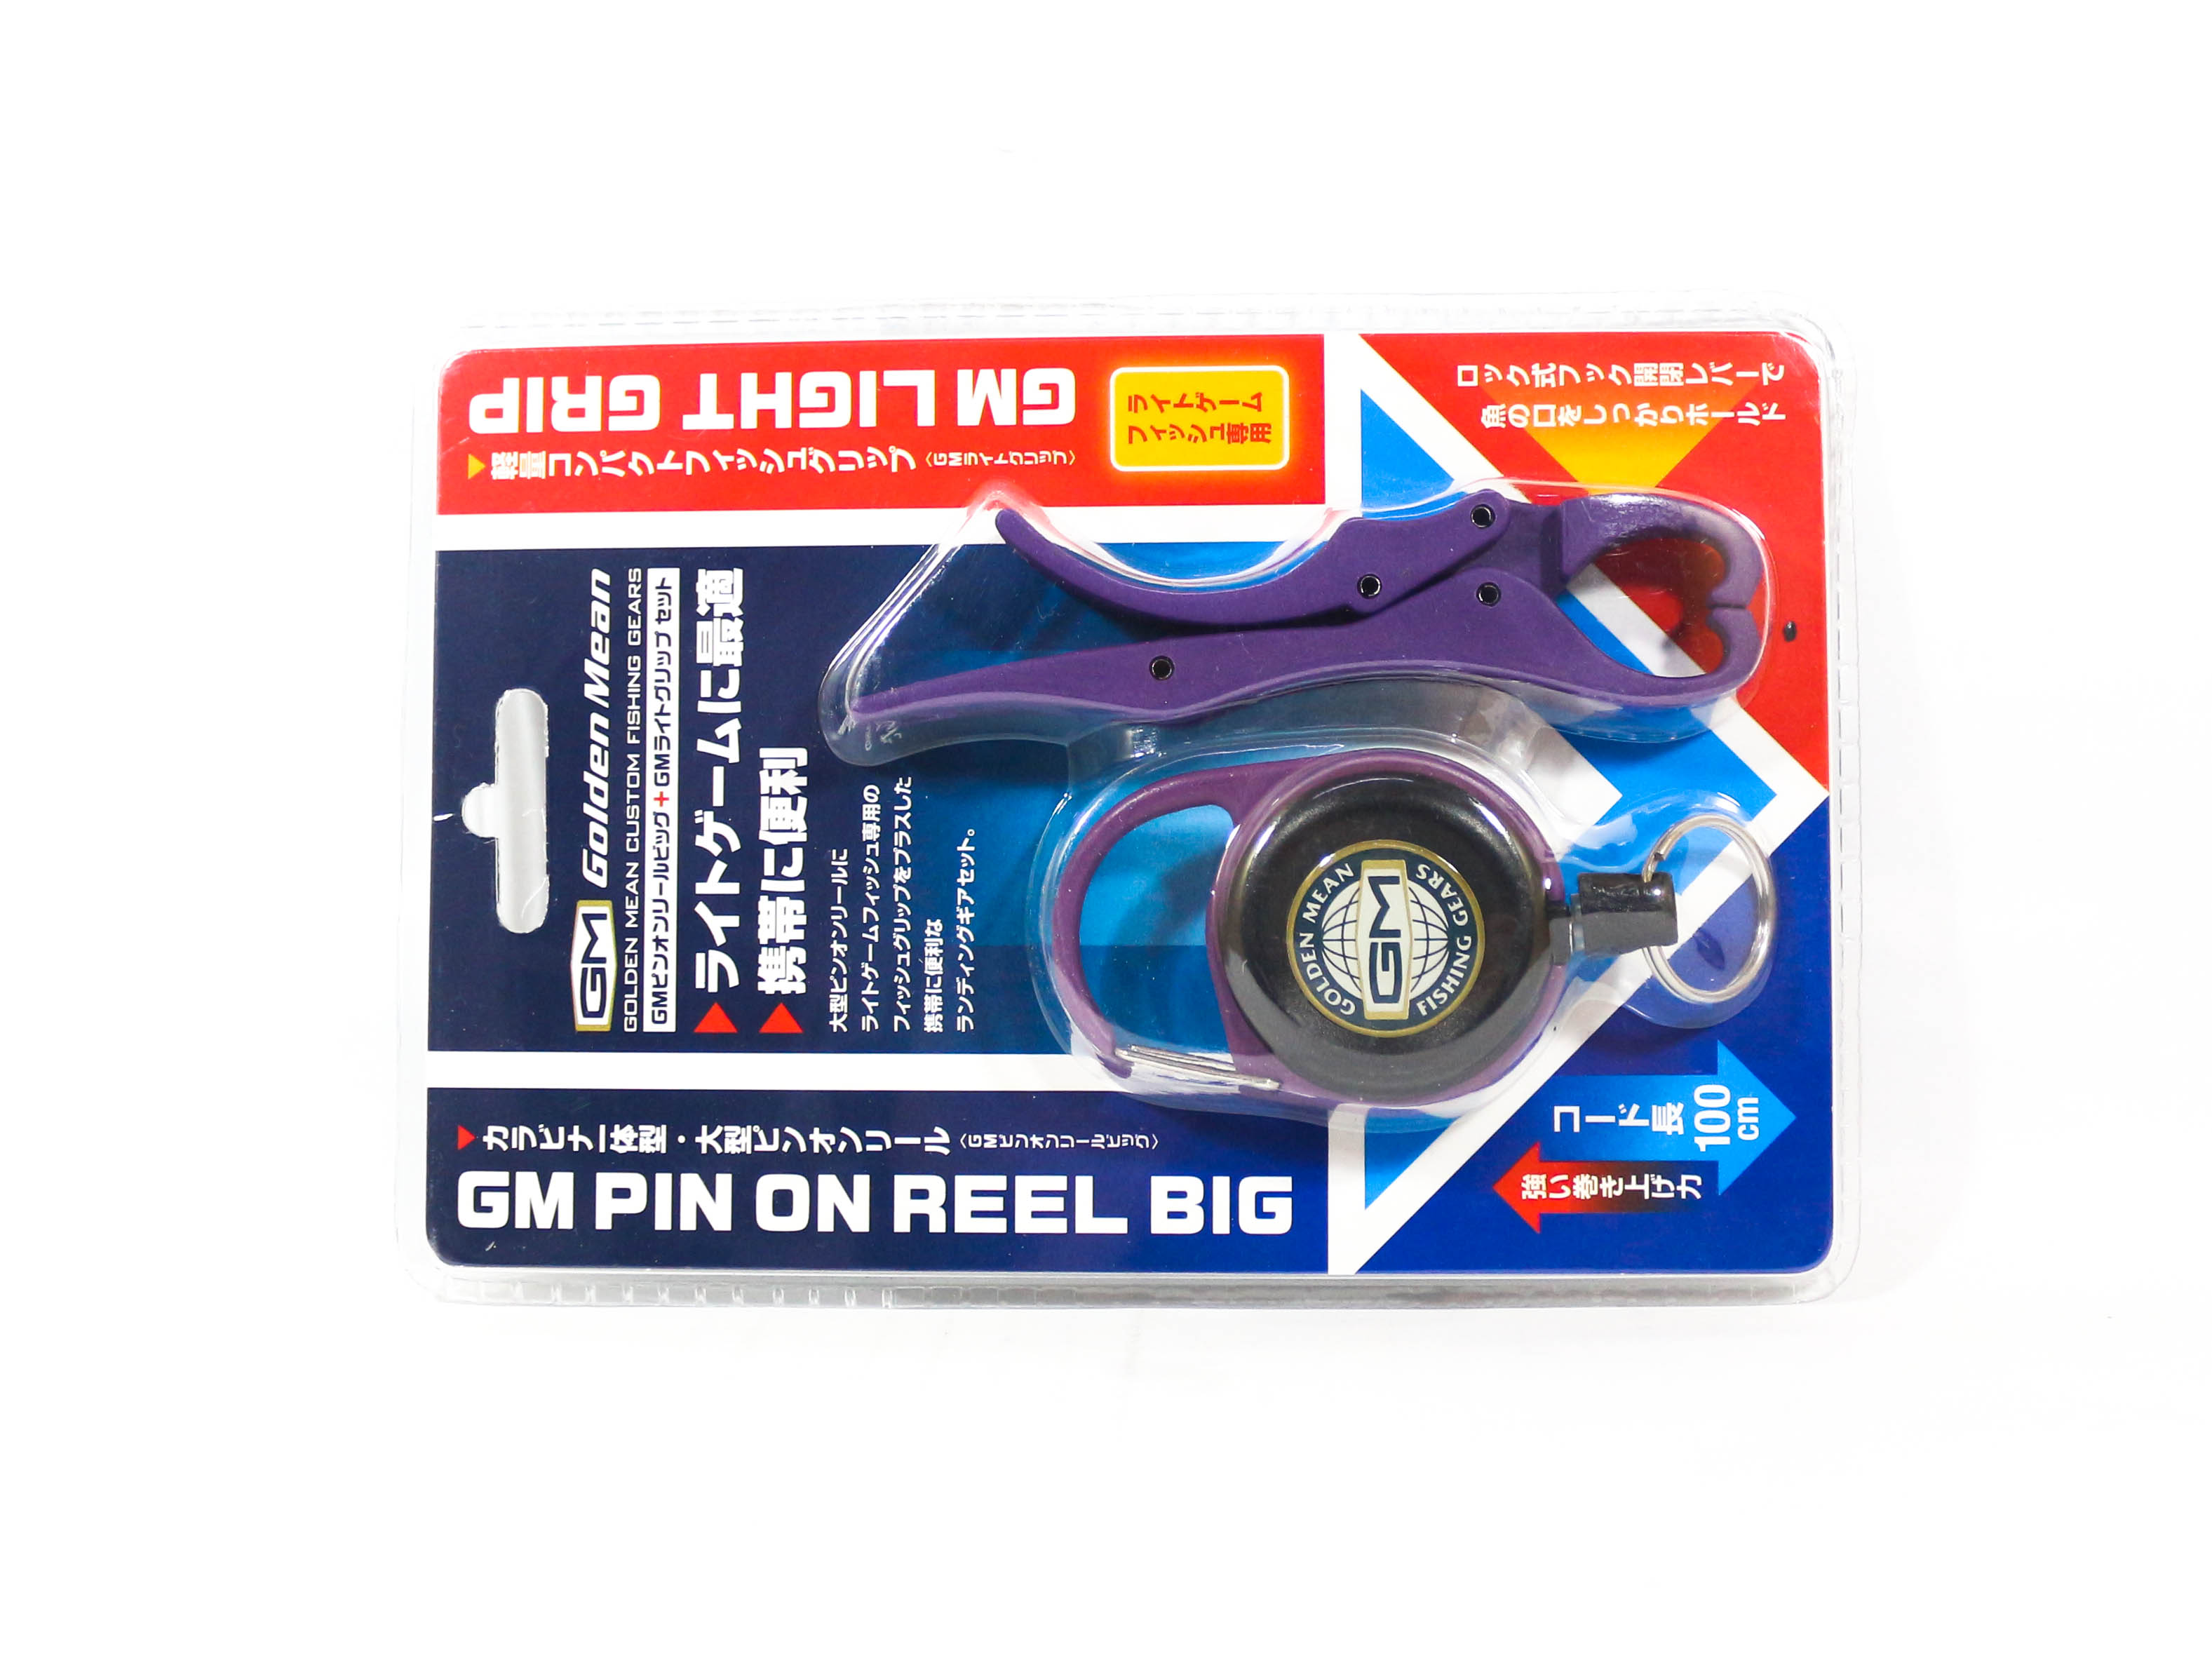 Golden Mean GM Pin on Reel Big Carabina 100cm with Light Grip Purple (6259)